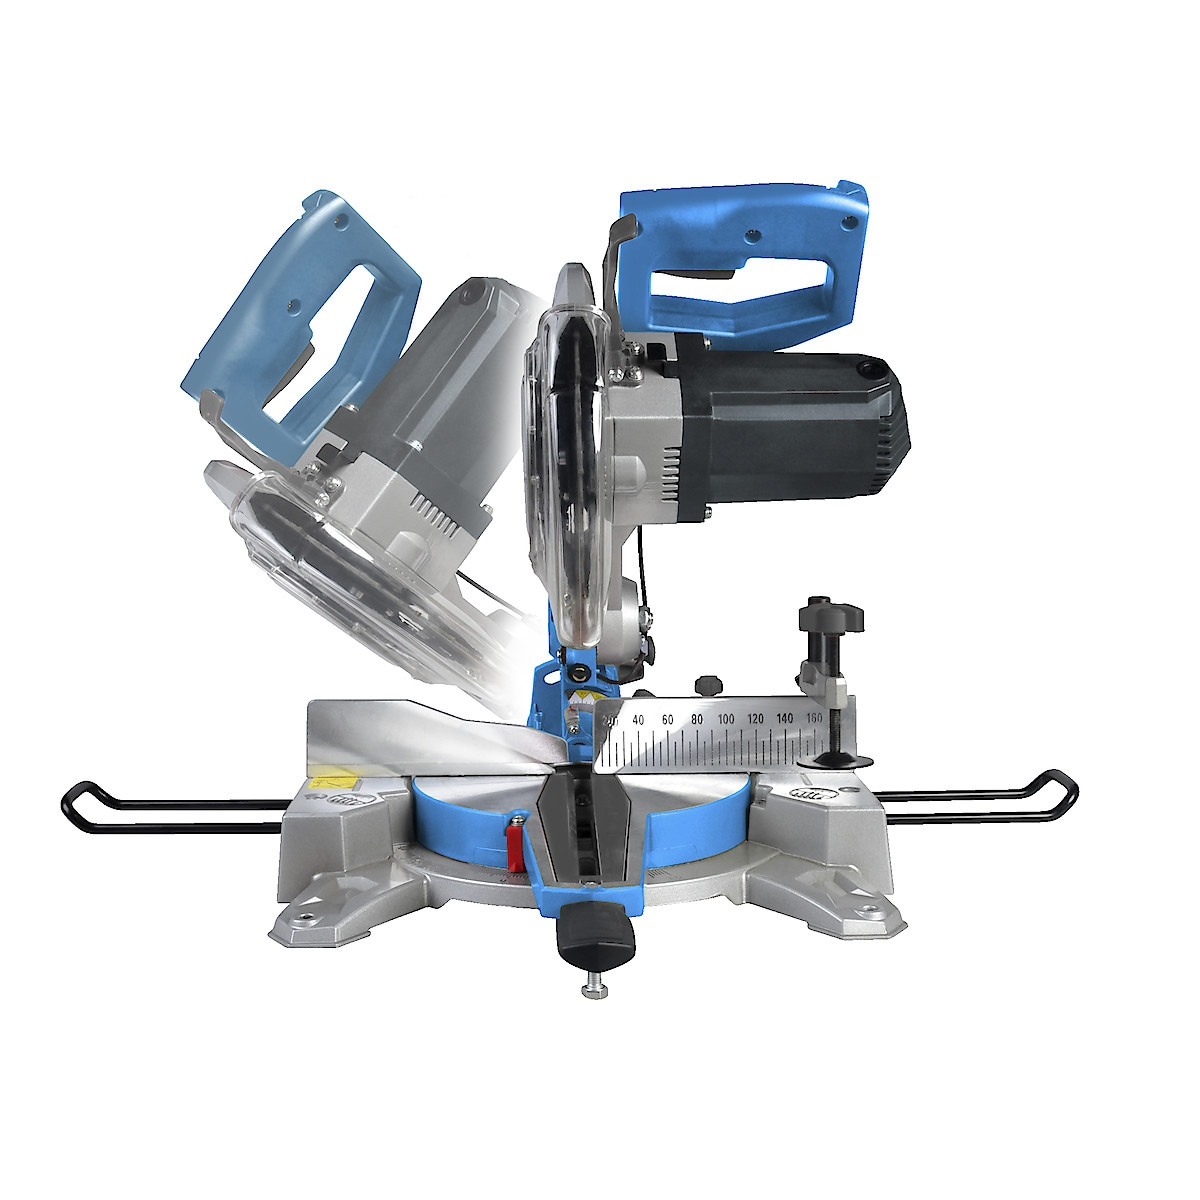 Cocraft HMS 210-L Compound Mitre Saw